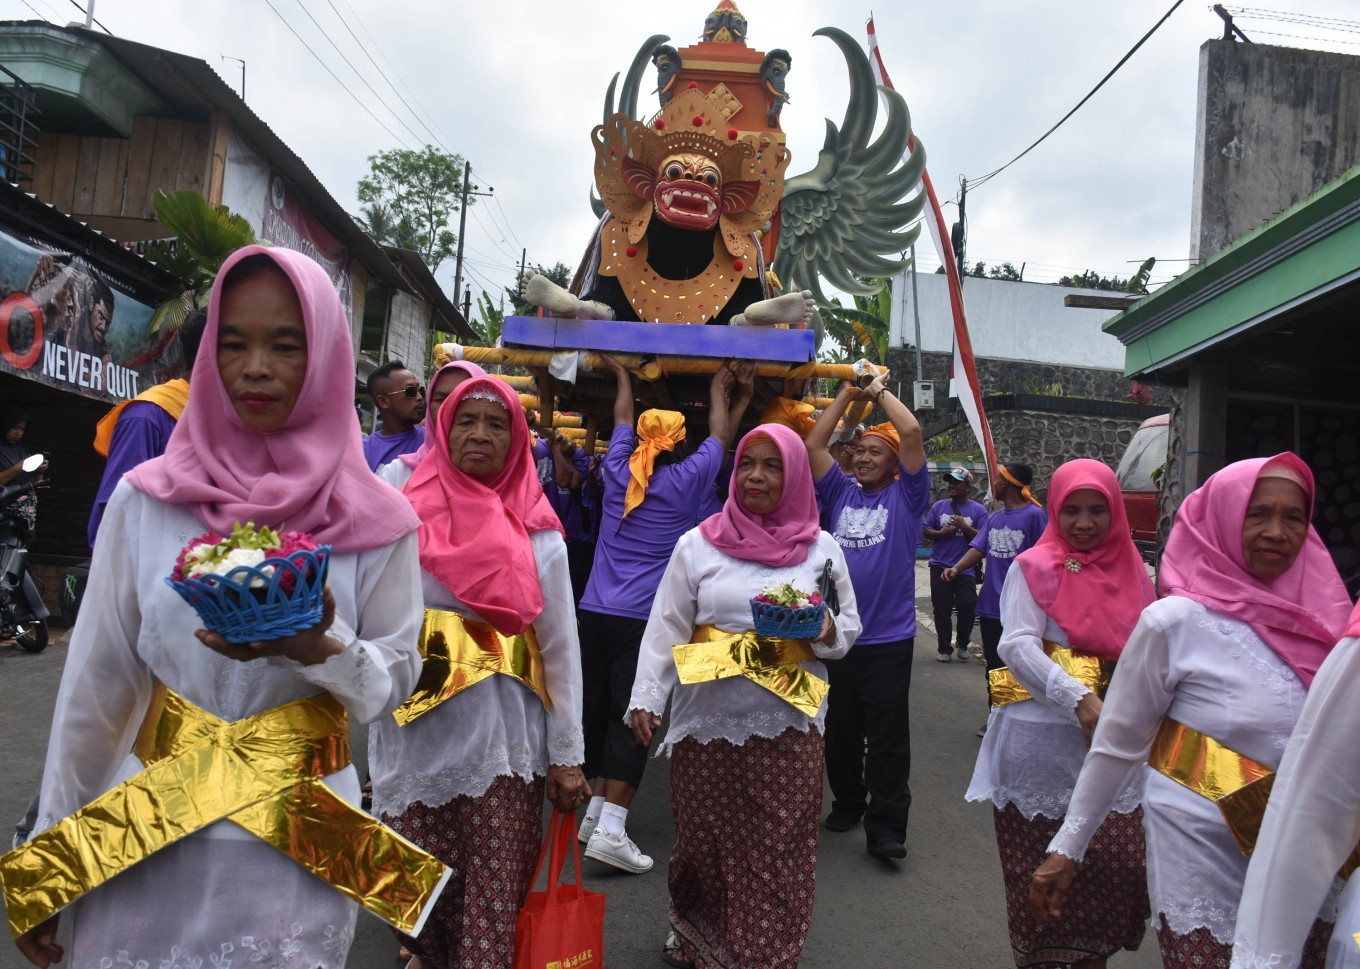 Javanese New Year parade in Malang village celebrates religious diversity